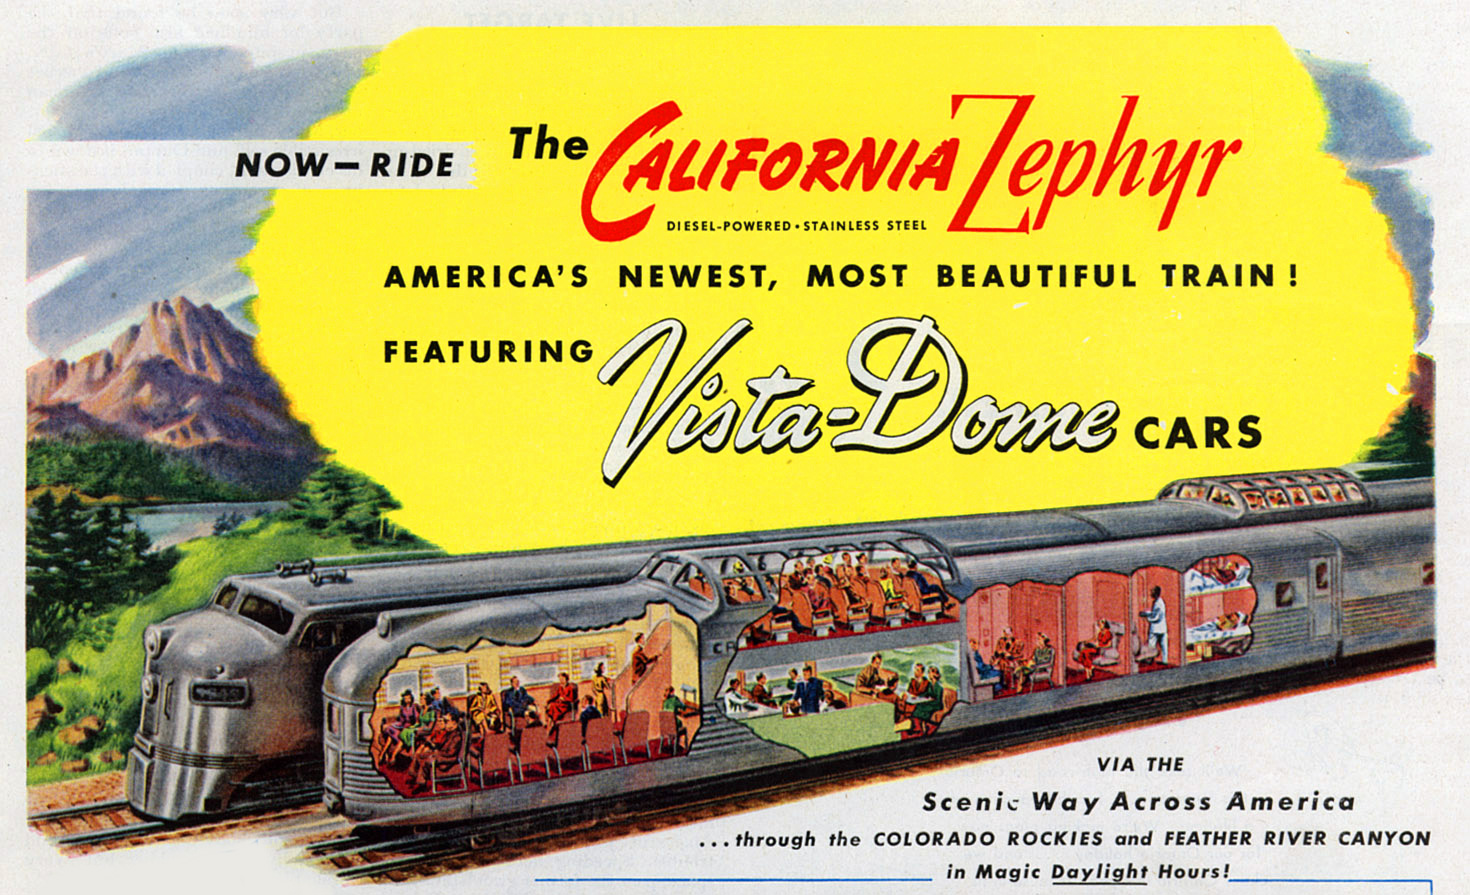 38ponti moreover Ww2 Homefront as well California Zephyr likewise Cars290 additionally Lamborghini Countach Lp500 Prototype 1971 Photos 19355. on 1940s car ads